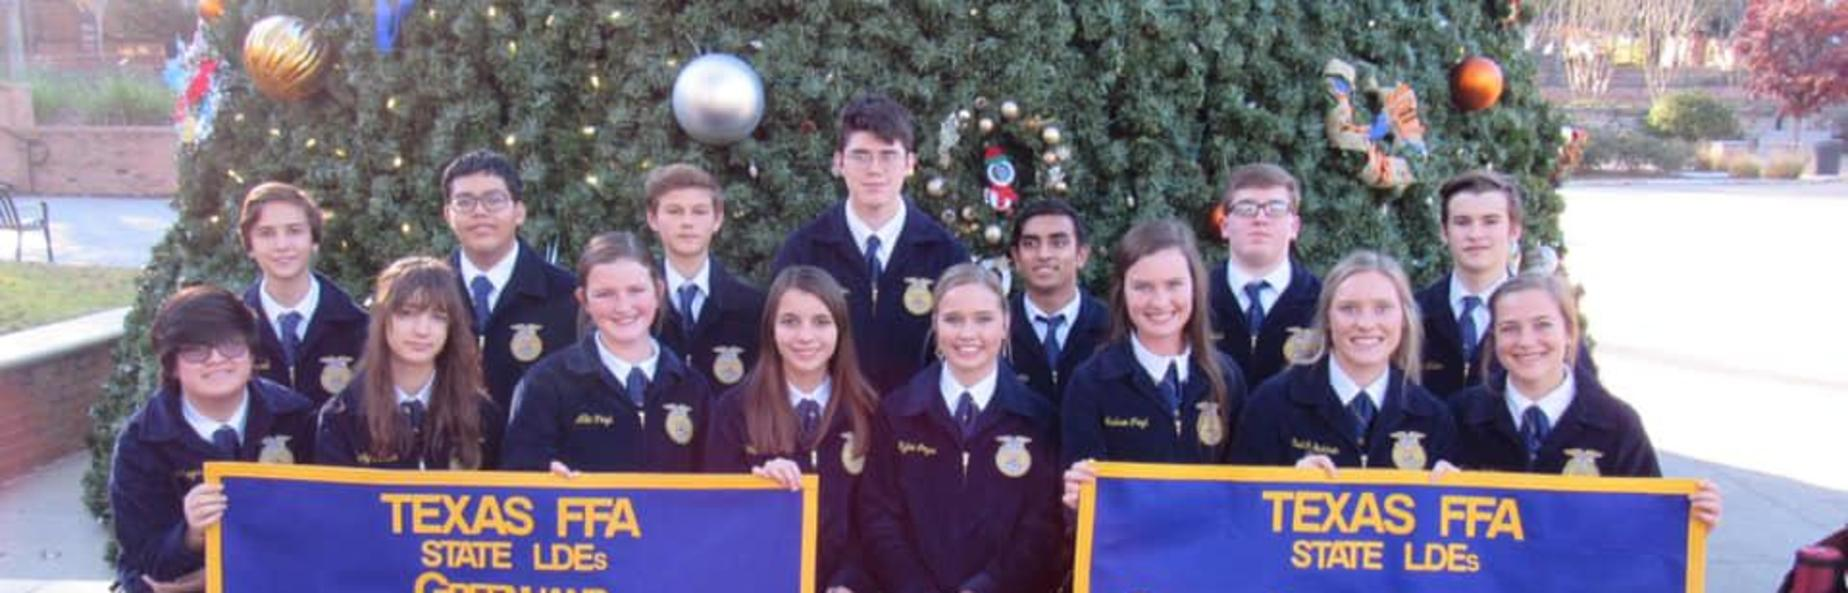 ffa students holding banners